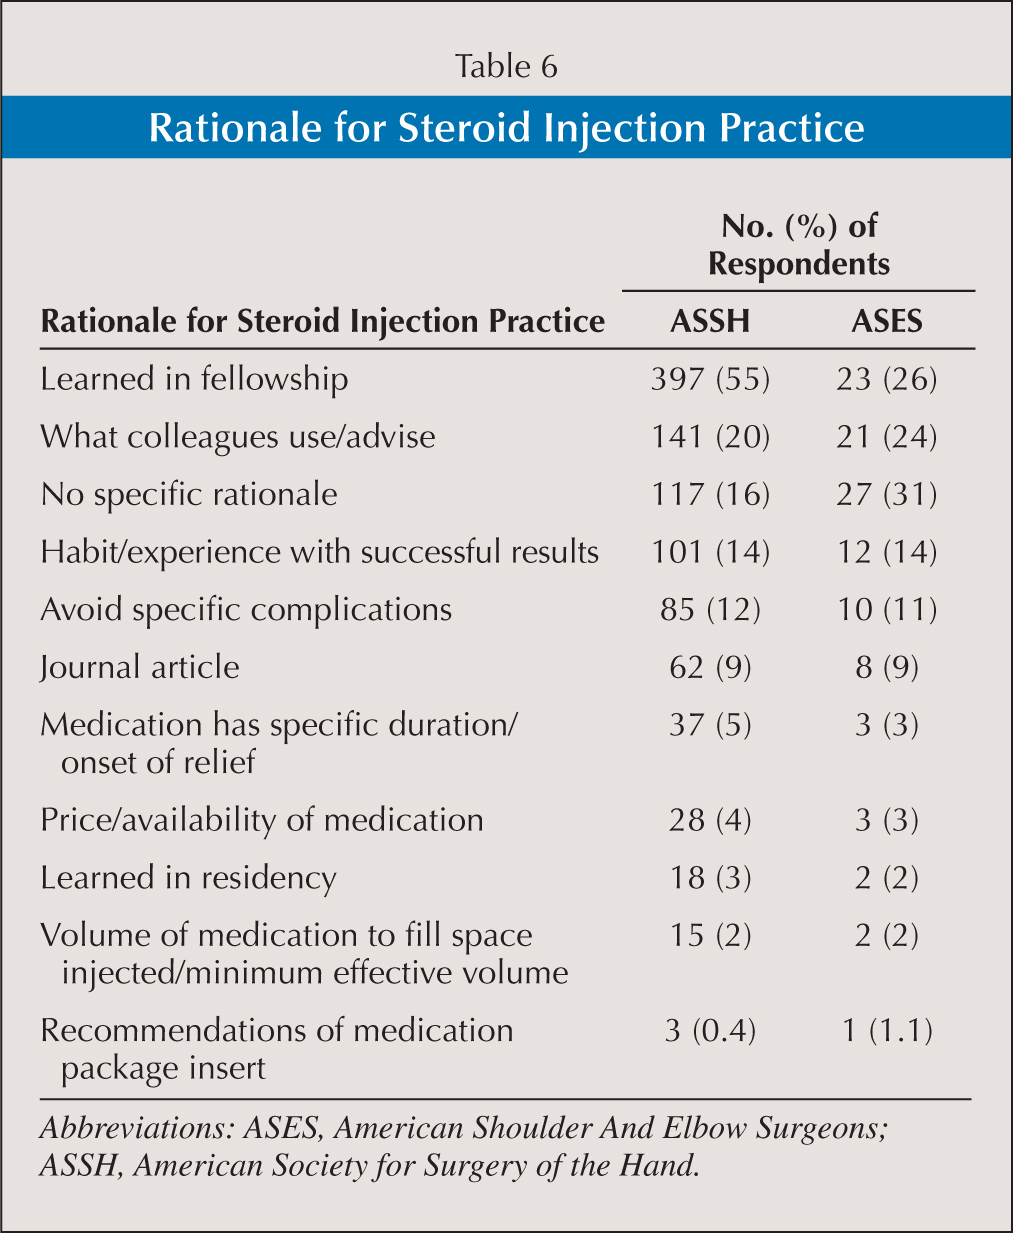 antenatal steroids guidelines rcog